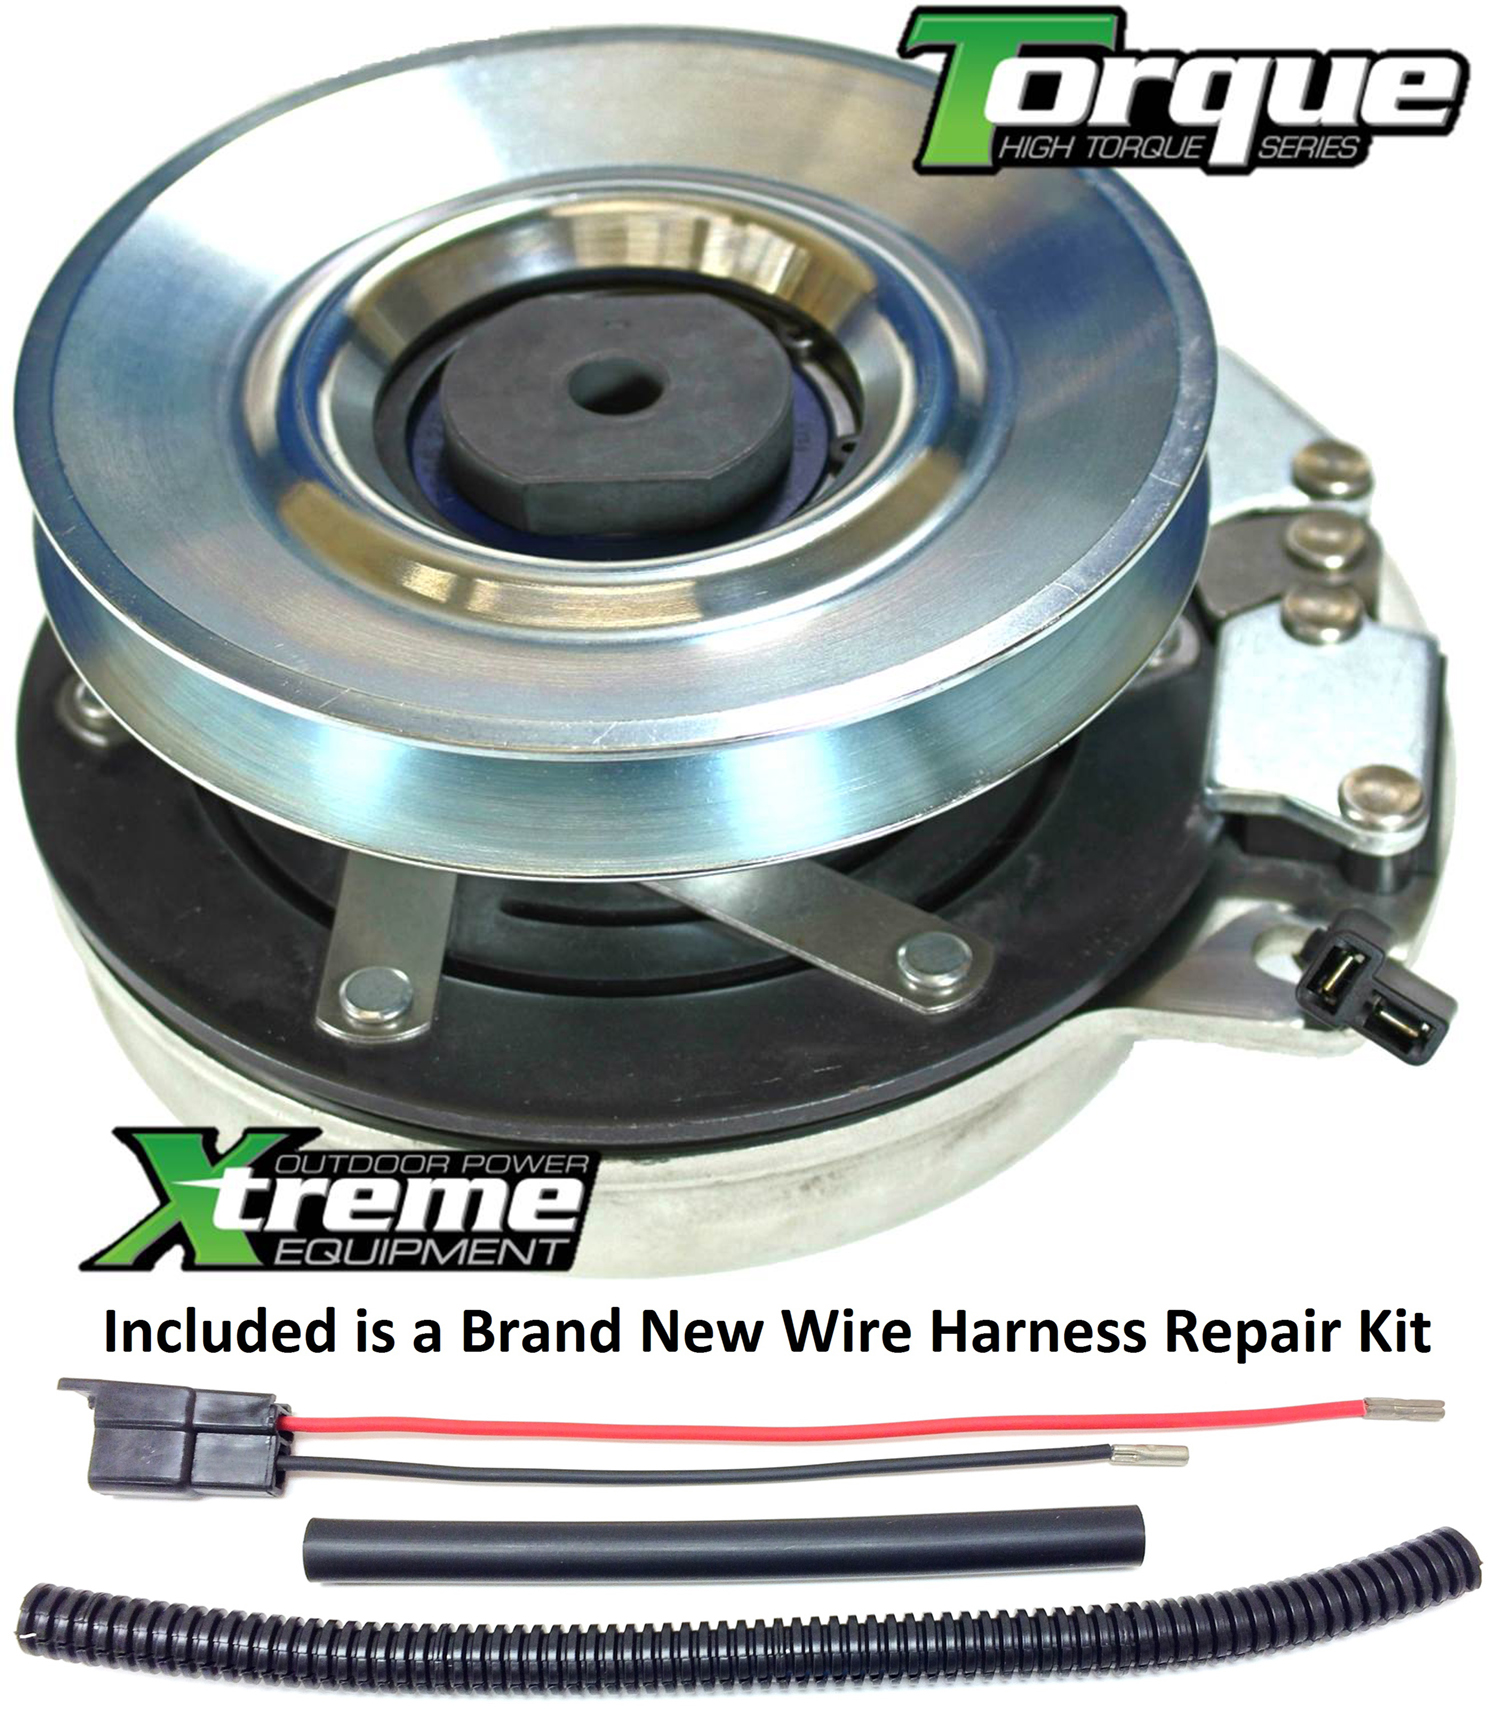 Bundle 2 Items Pto Electric Blade Clutch Wire Harness Repair Kit Replaces Dixon 574607001 Upgraded Bearings